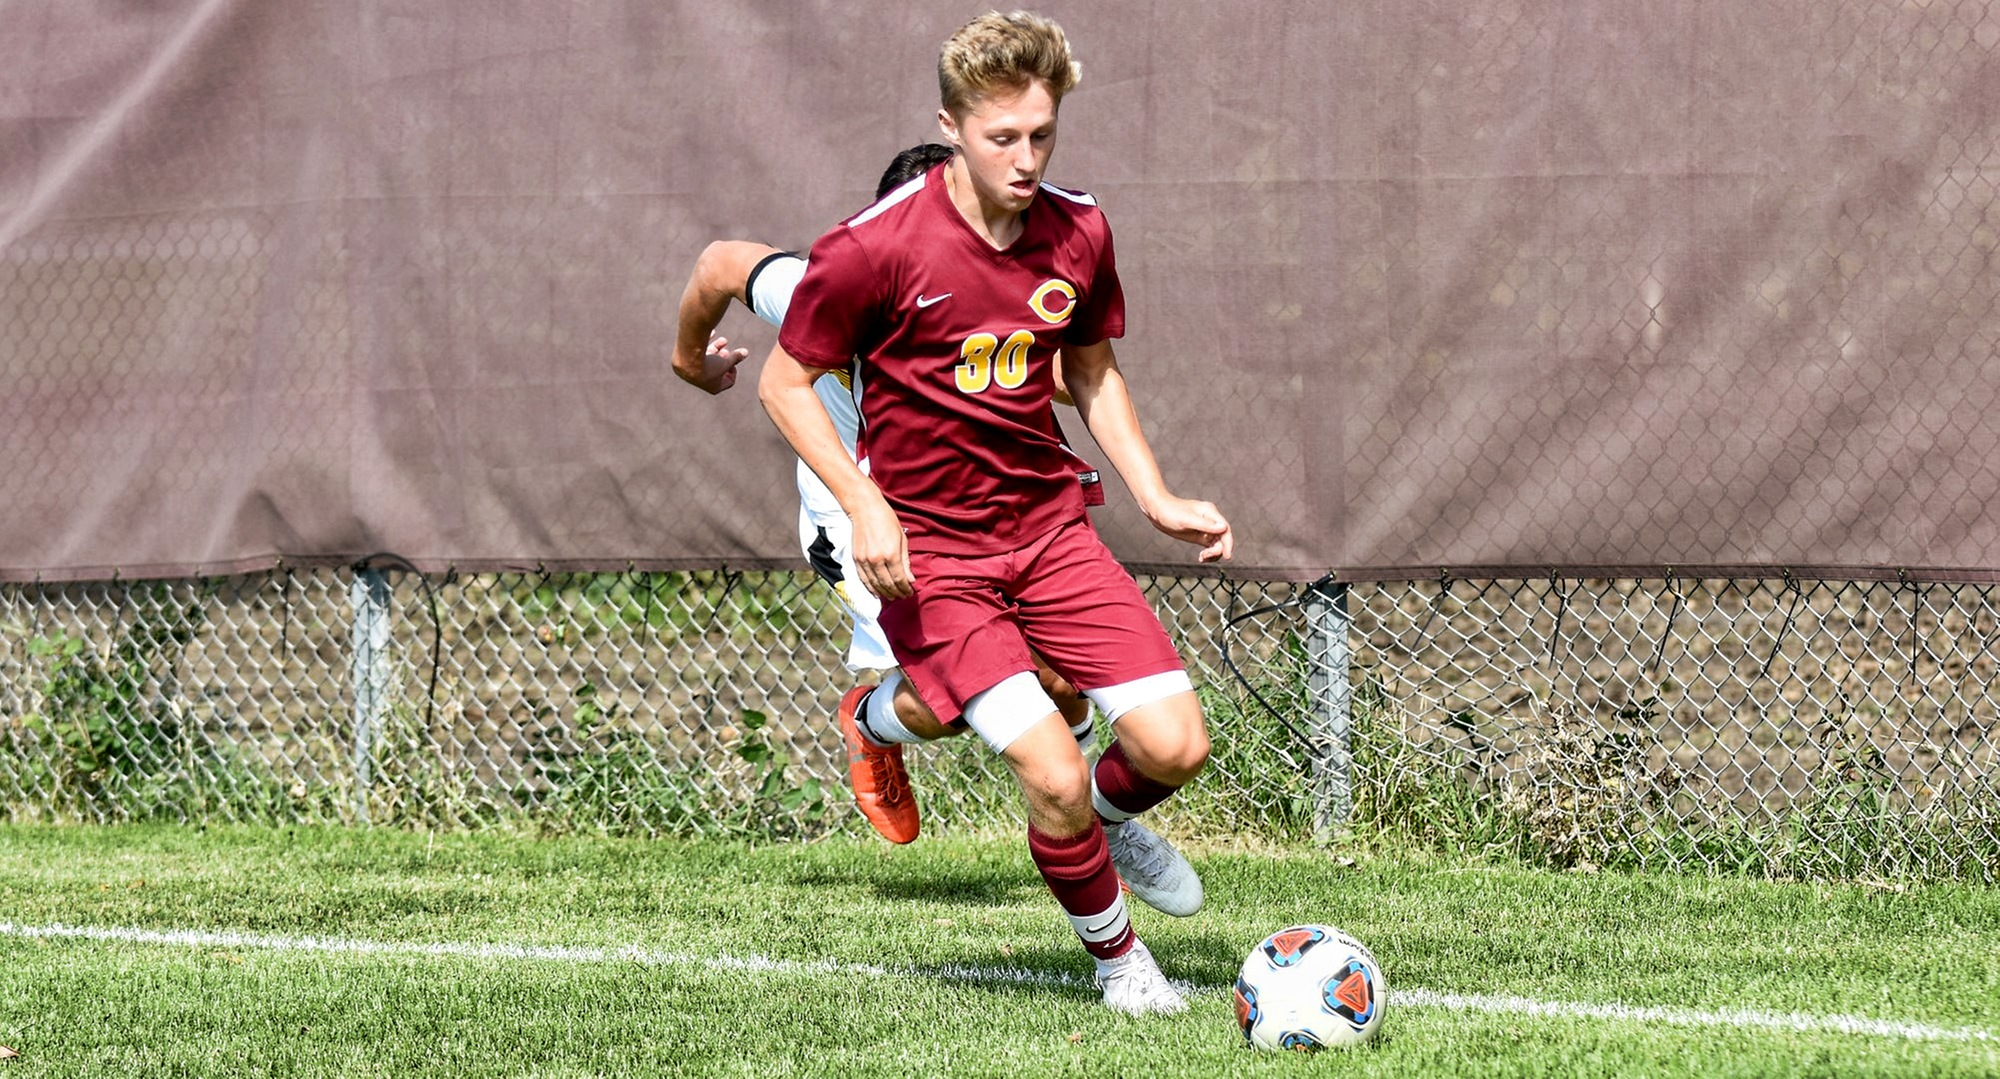 Freshman TJ Anderson scored a pair of goals, including the game winner, in the Cobbers' 4-2 win at Viterbo.